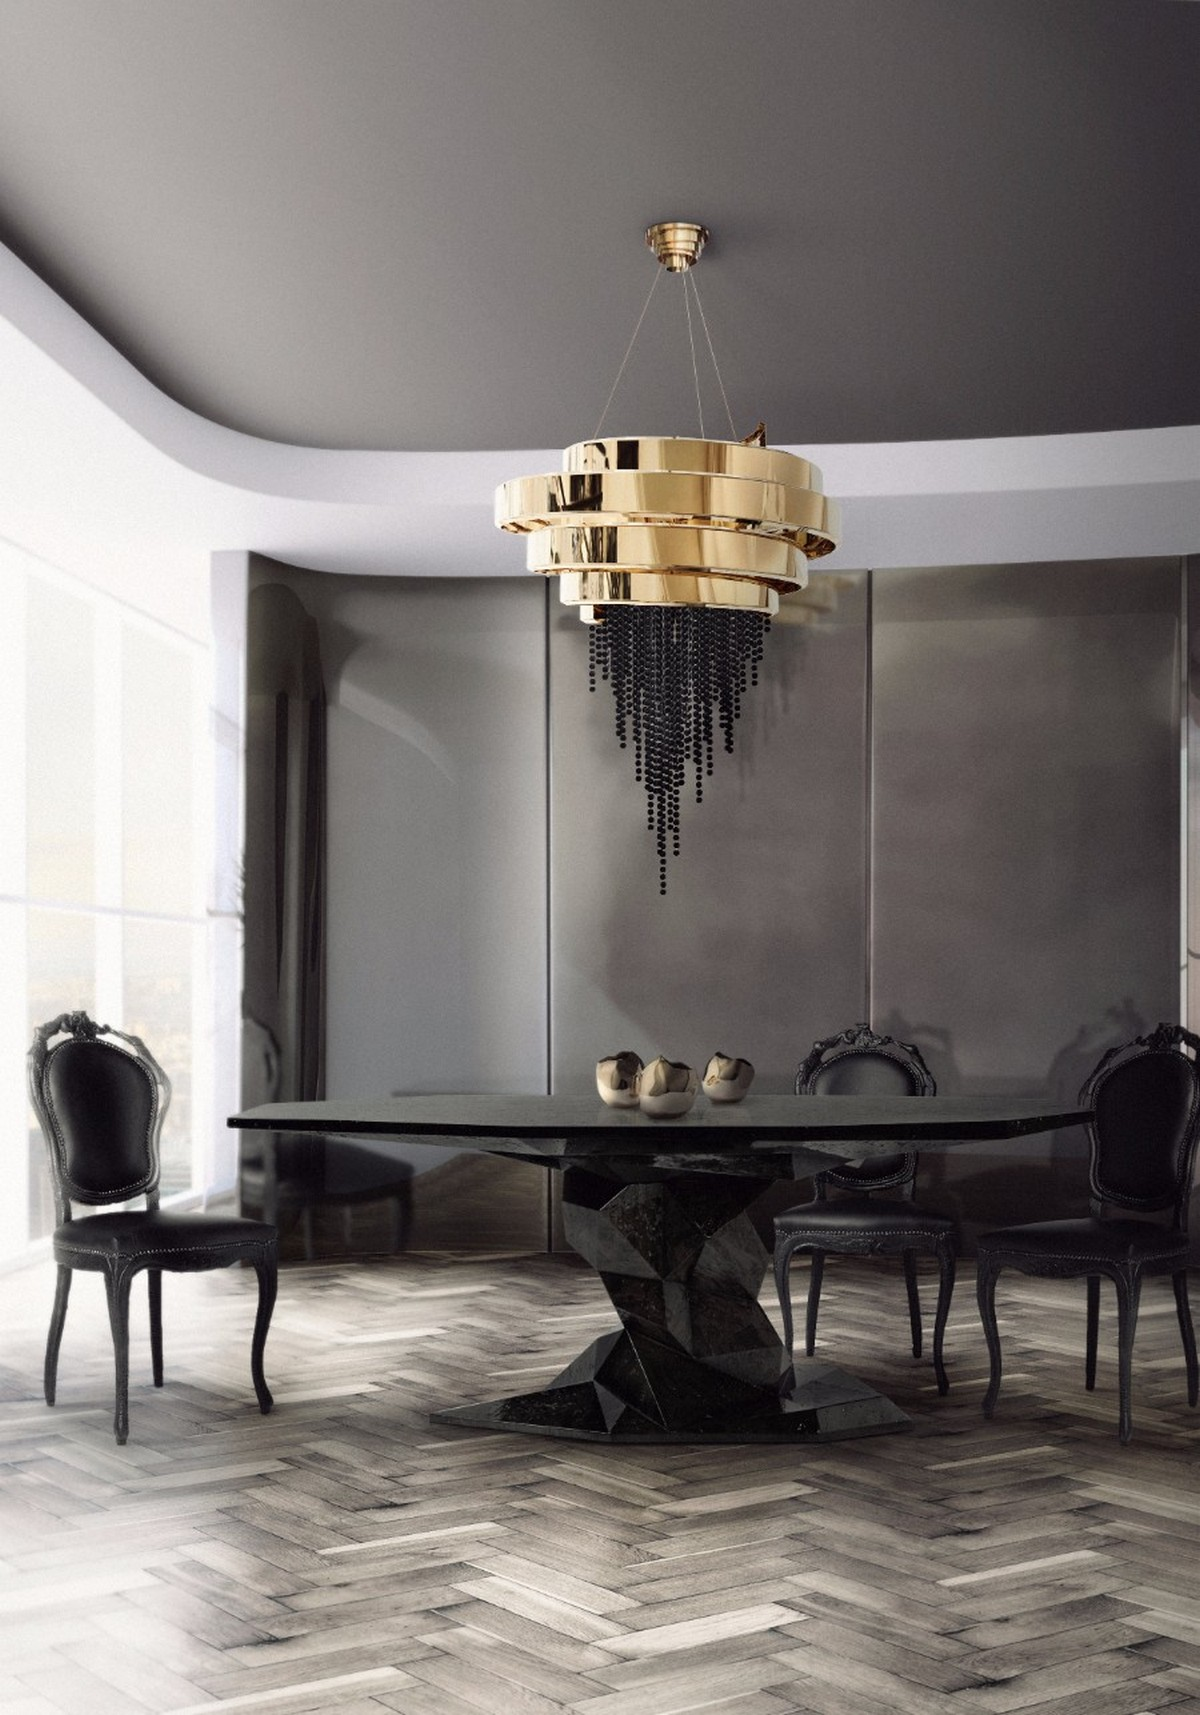 5 Modern Dining Table Designs You Shouldn't Miss modern dining table designs 5 Modern Dining Table Designs You Shouldn't Miss bonsai2